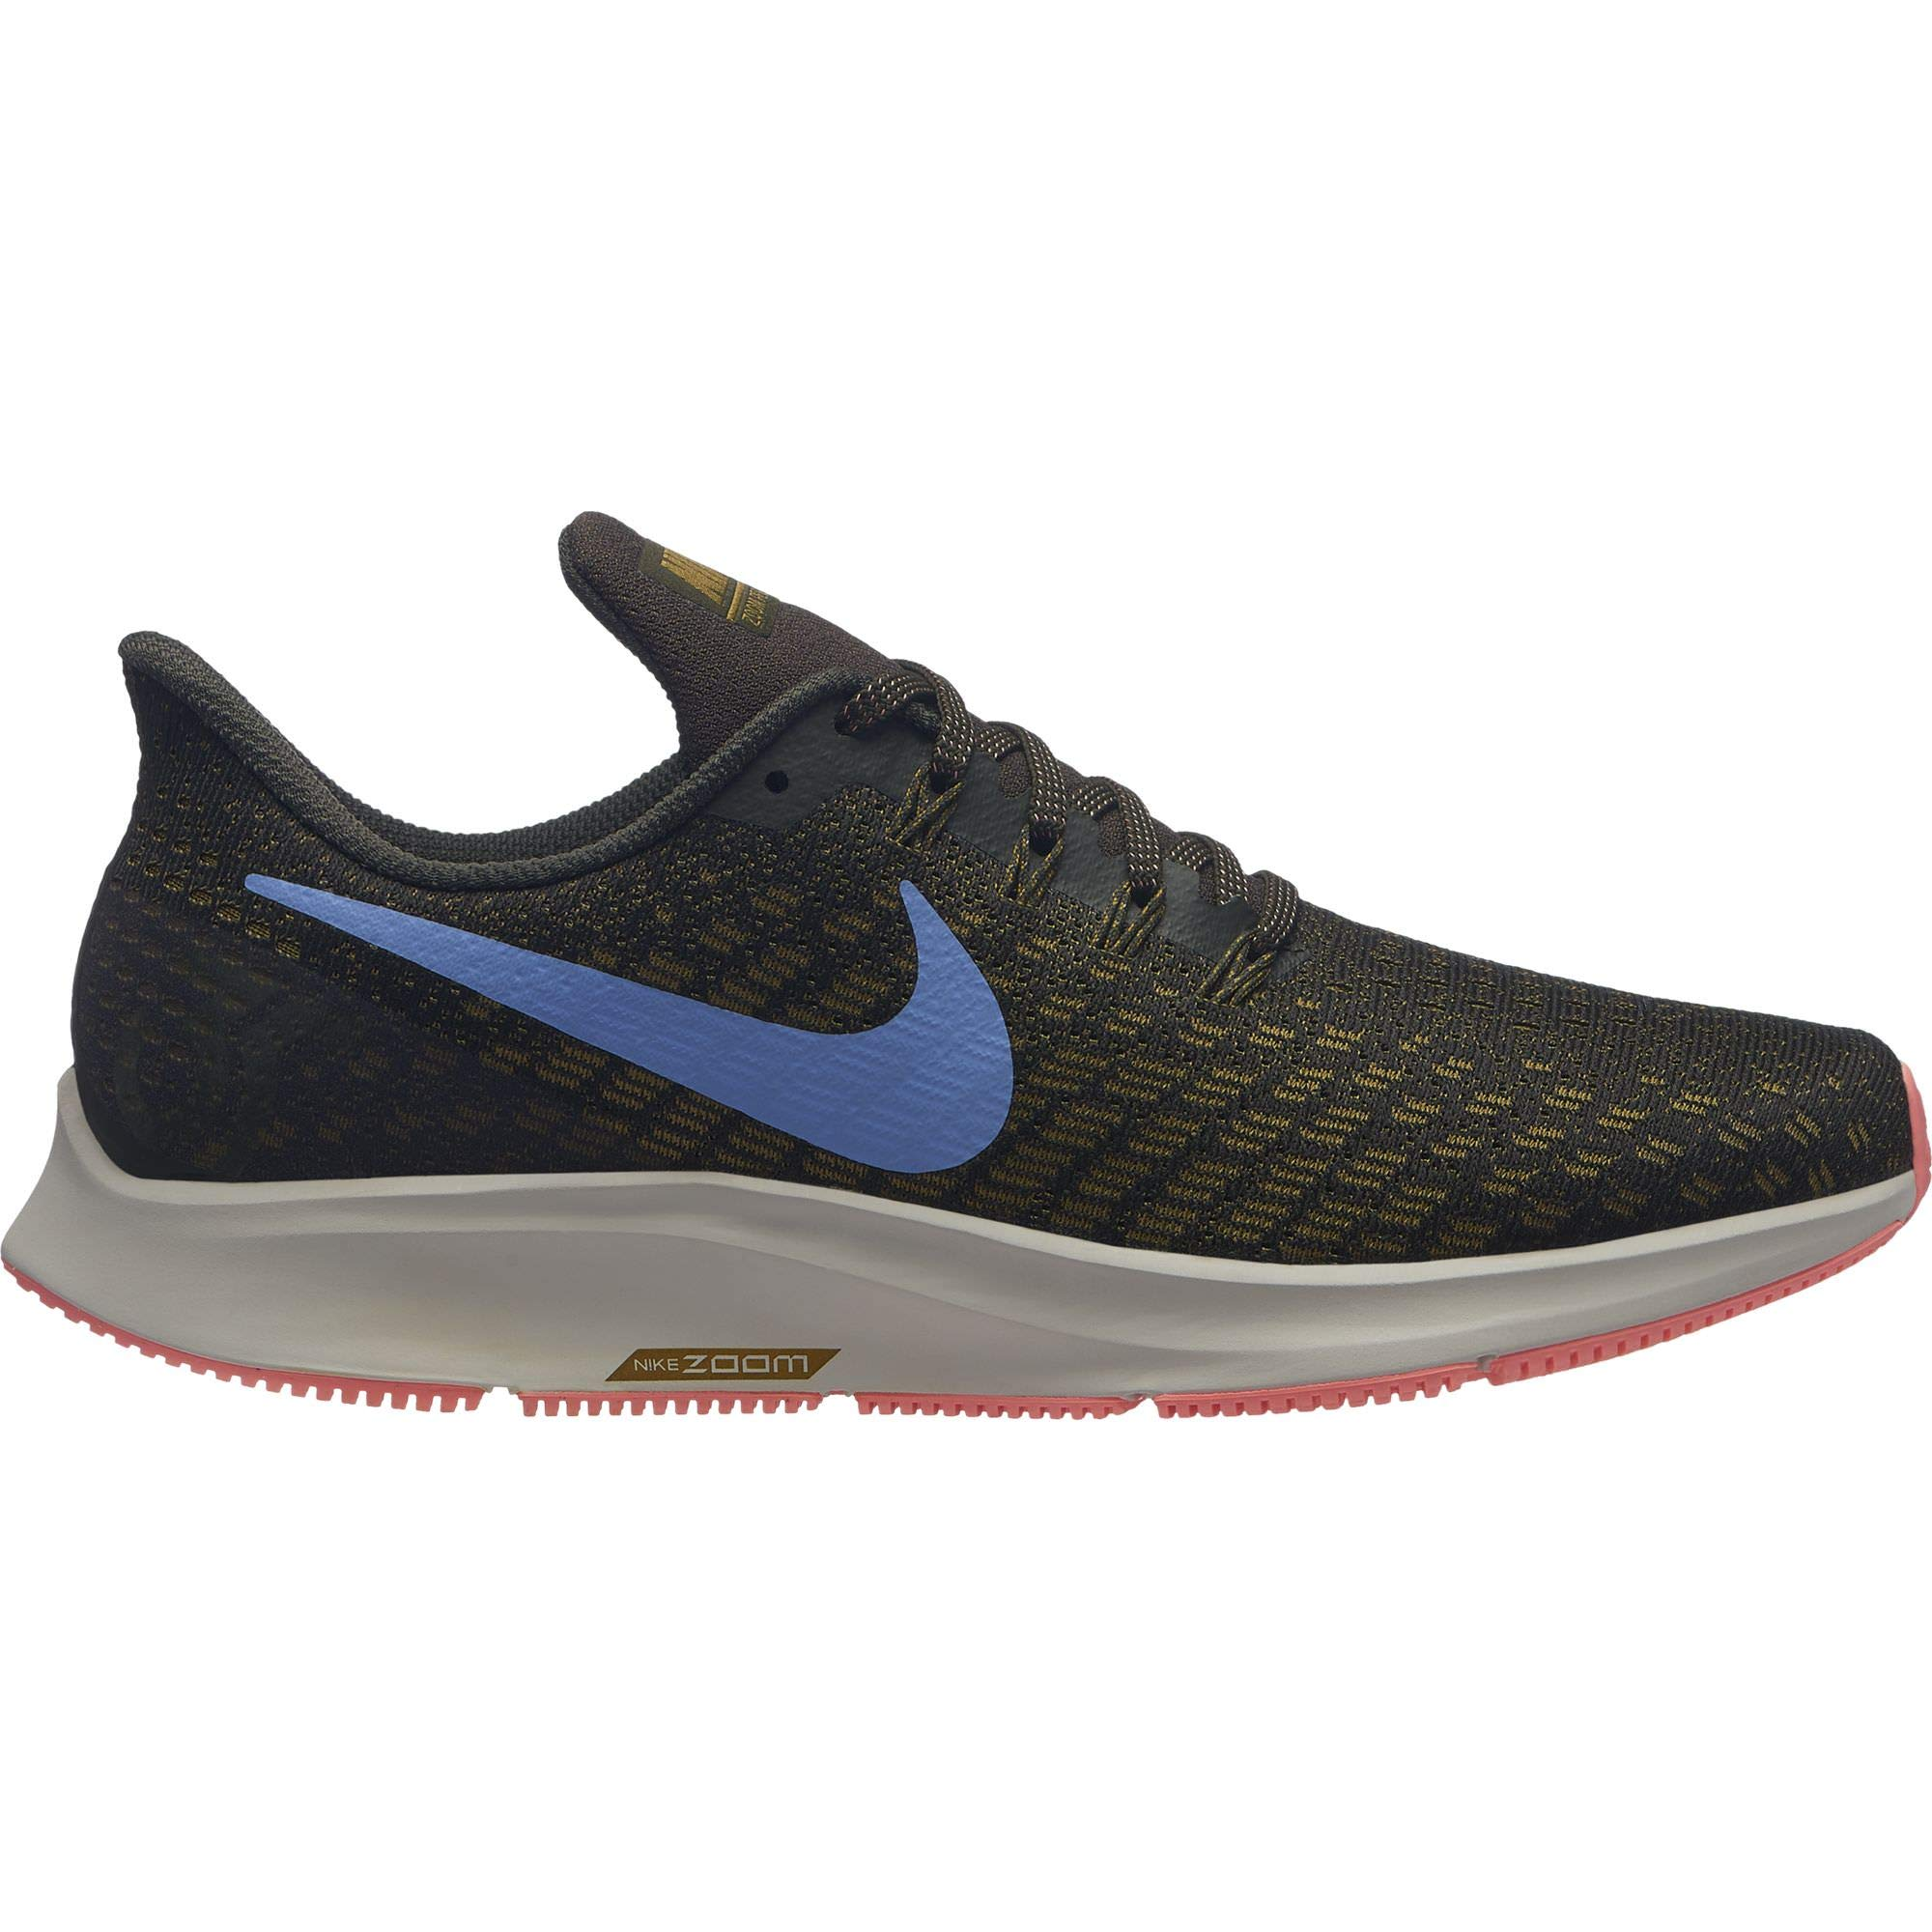 c44e21ed0c5 Galleon - NIKE Women s Air Zoom Pegasus 35 Sequoia Royal Pulse-Olive Flak  10.0